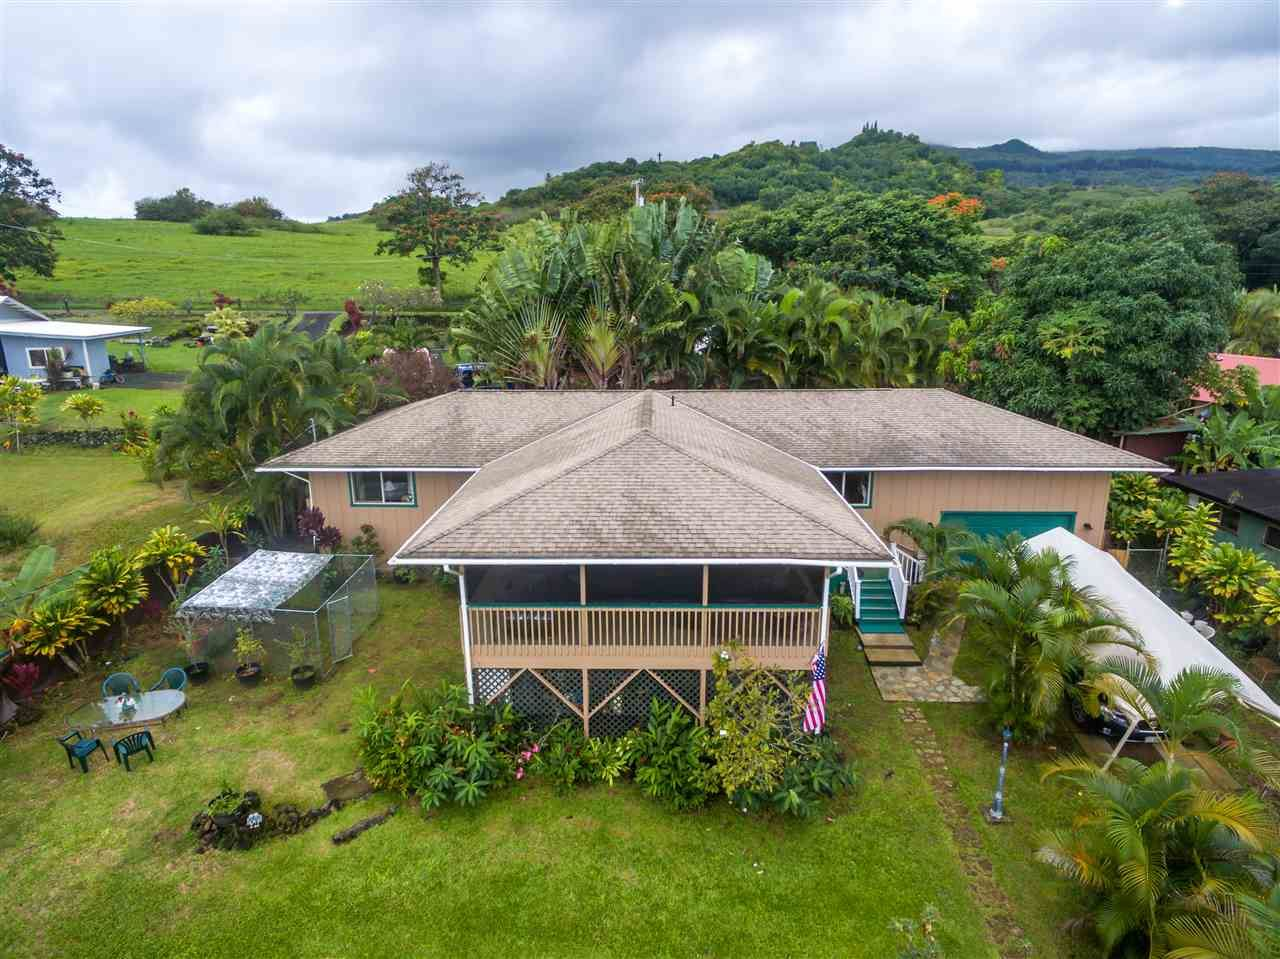 Photo of 33 Noenoe Pl, Hana, HI 96713 (MLS # 389374)